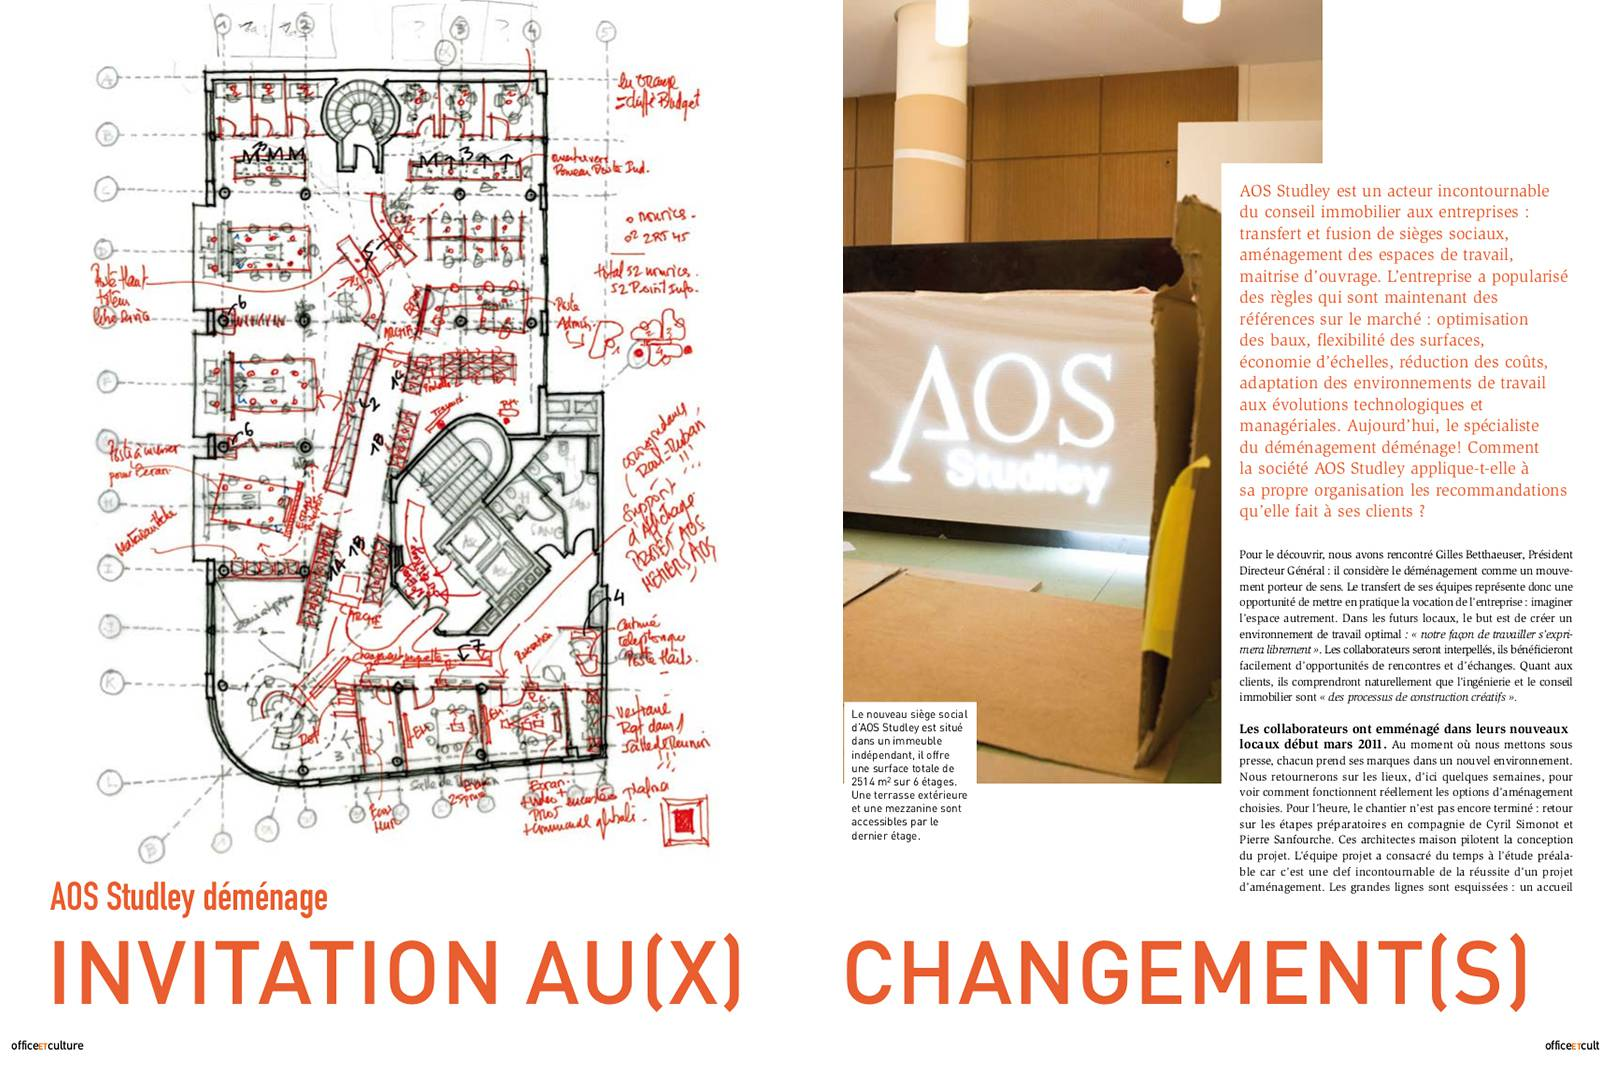 Office et culture #19 AOS Studley moves offices - Invitation to change